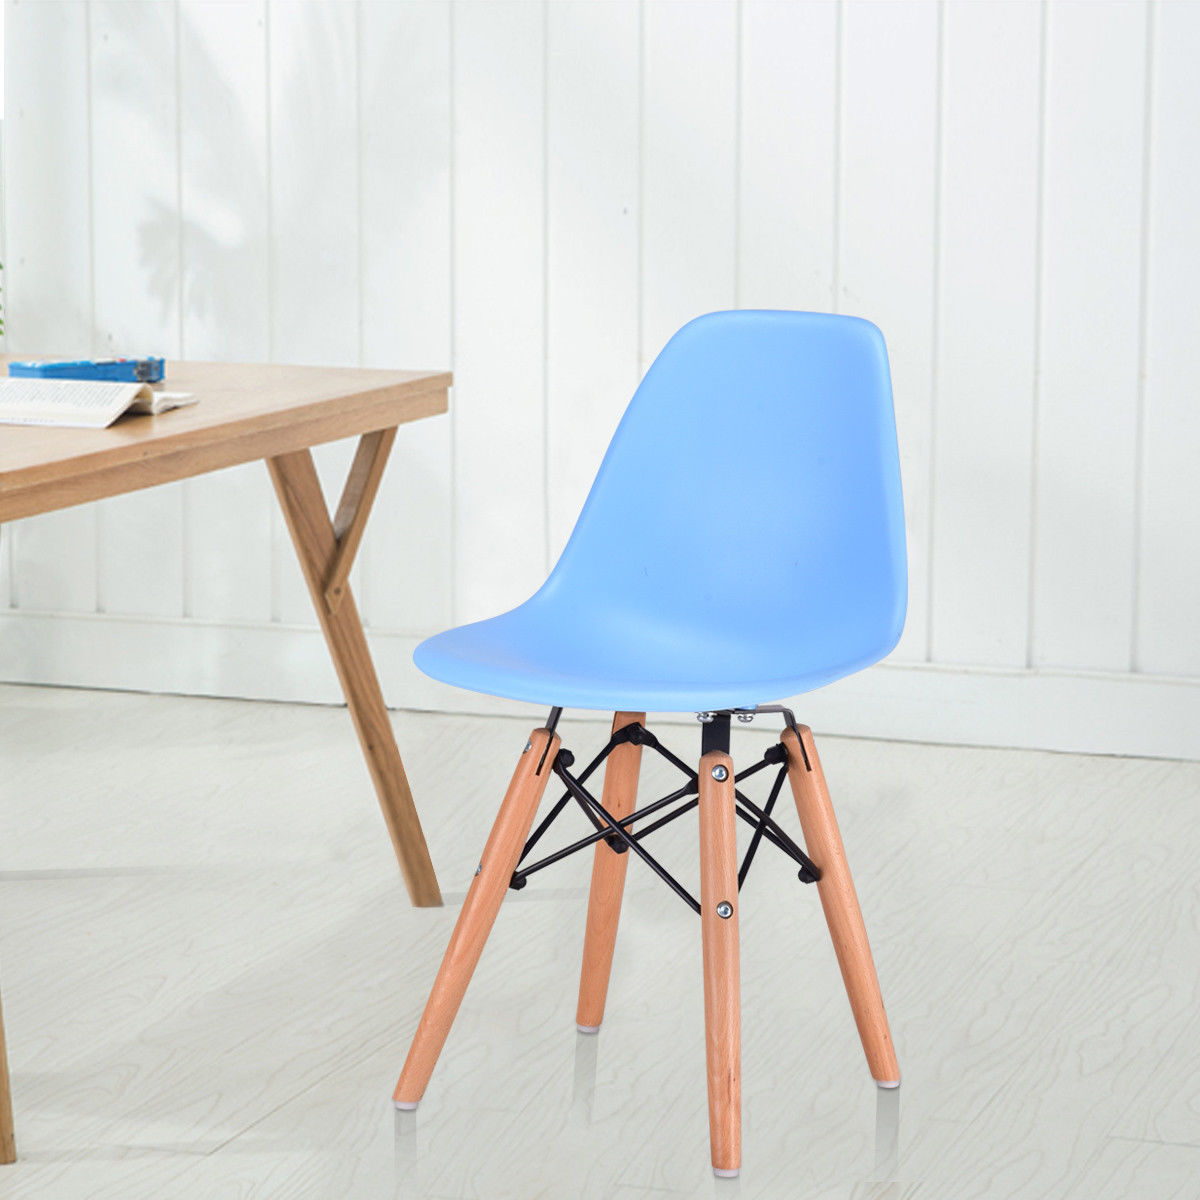 Giantex Modern Kids Dining Side Armless Chair Blue Molded Plastic Seat Wood Legs Children Chairs Home Furniture HW56499NY